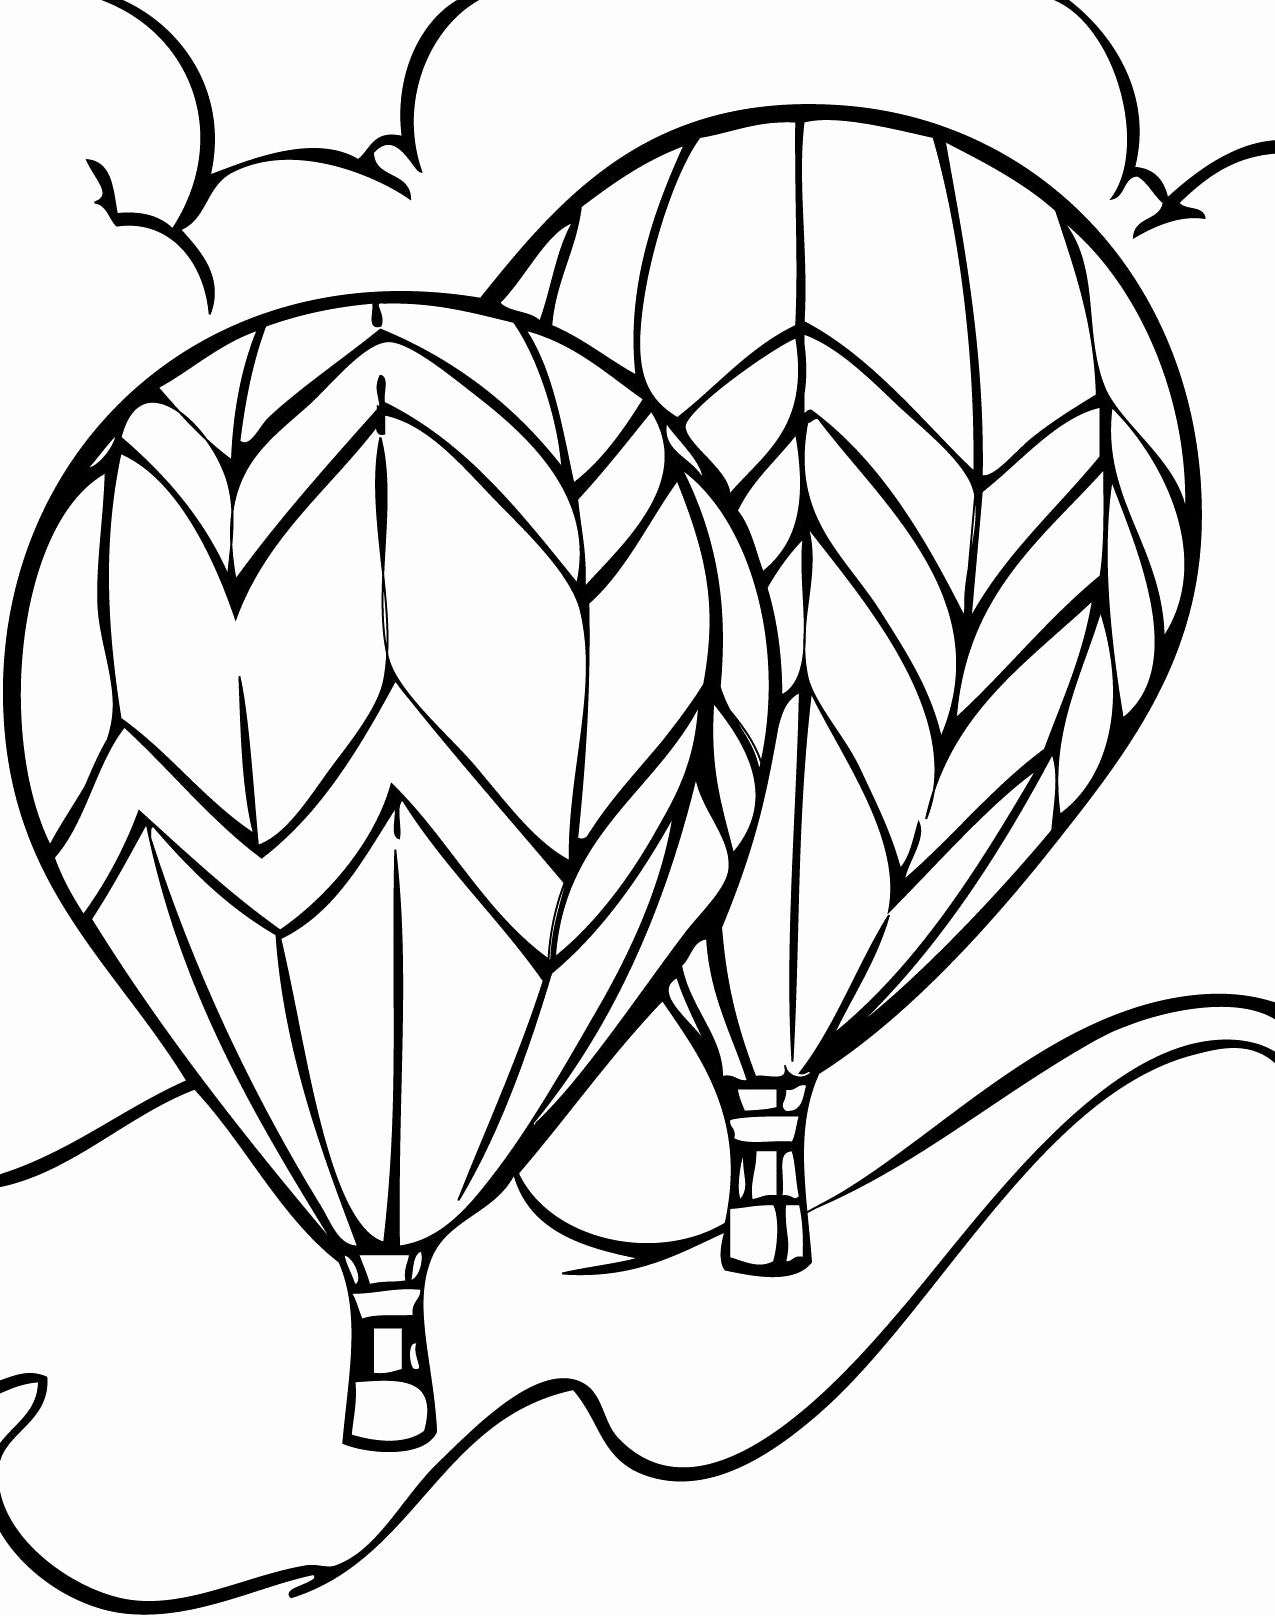 Coloring Pages For Elderly At Getdrawings